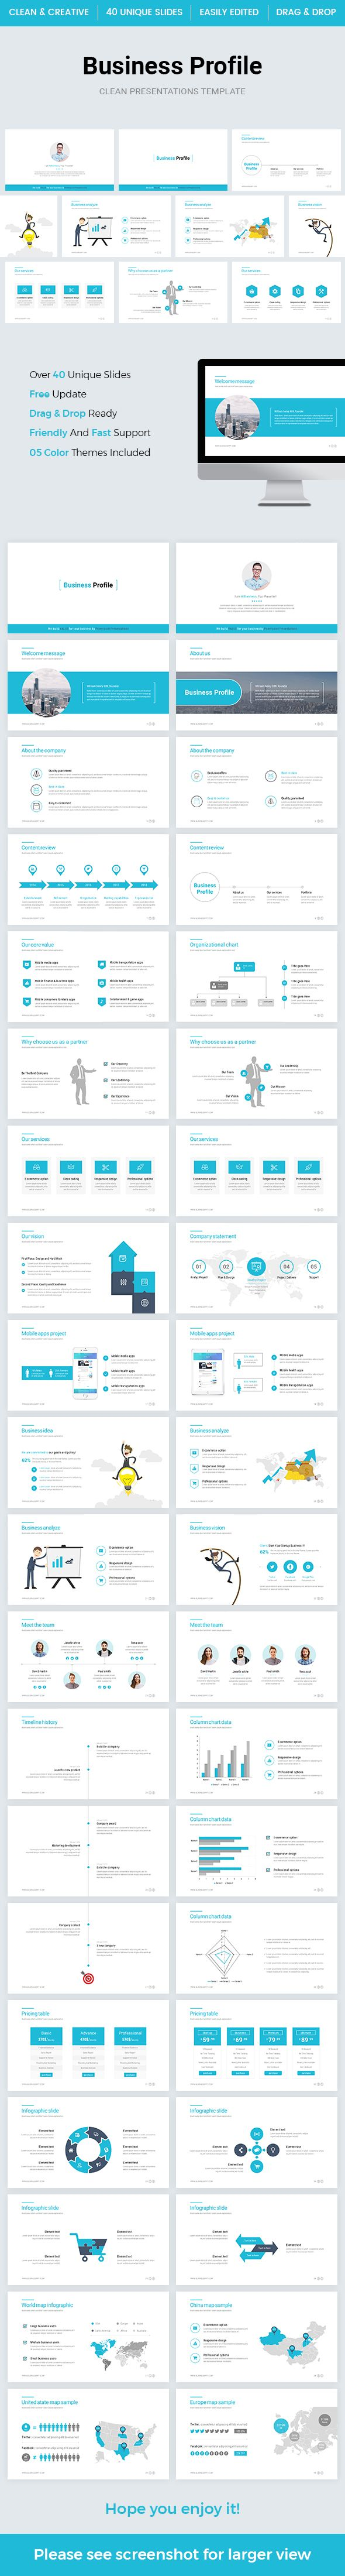 Business profile powerpoint template 2018 keynote template and business profile powerpoint template 2018 business powerpoint templates accmission Choice Image